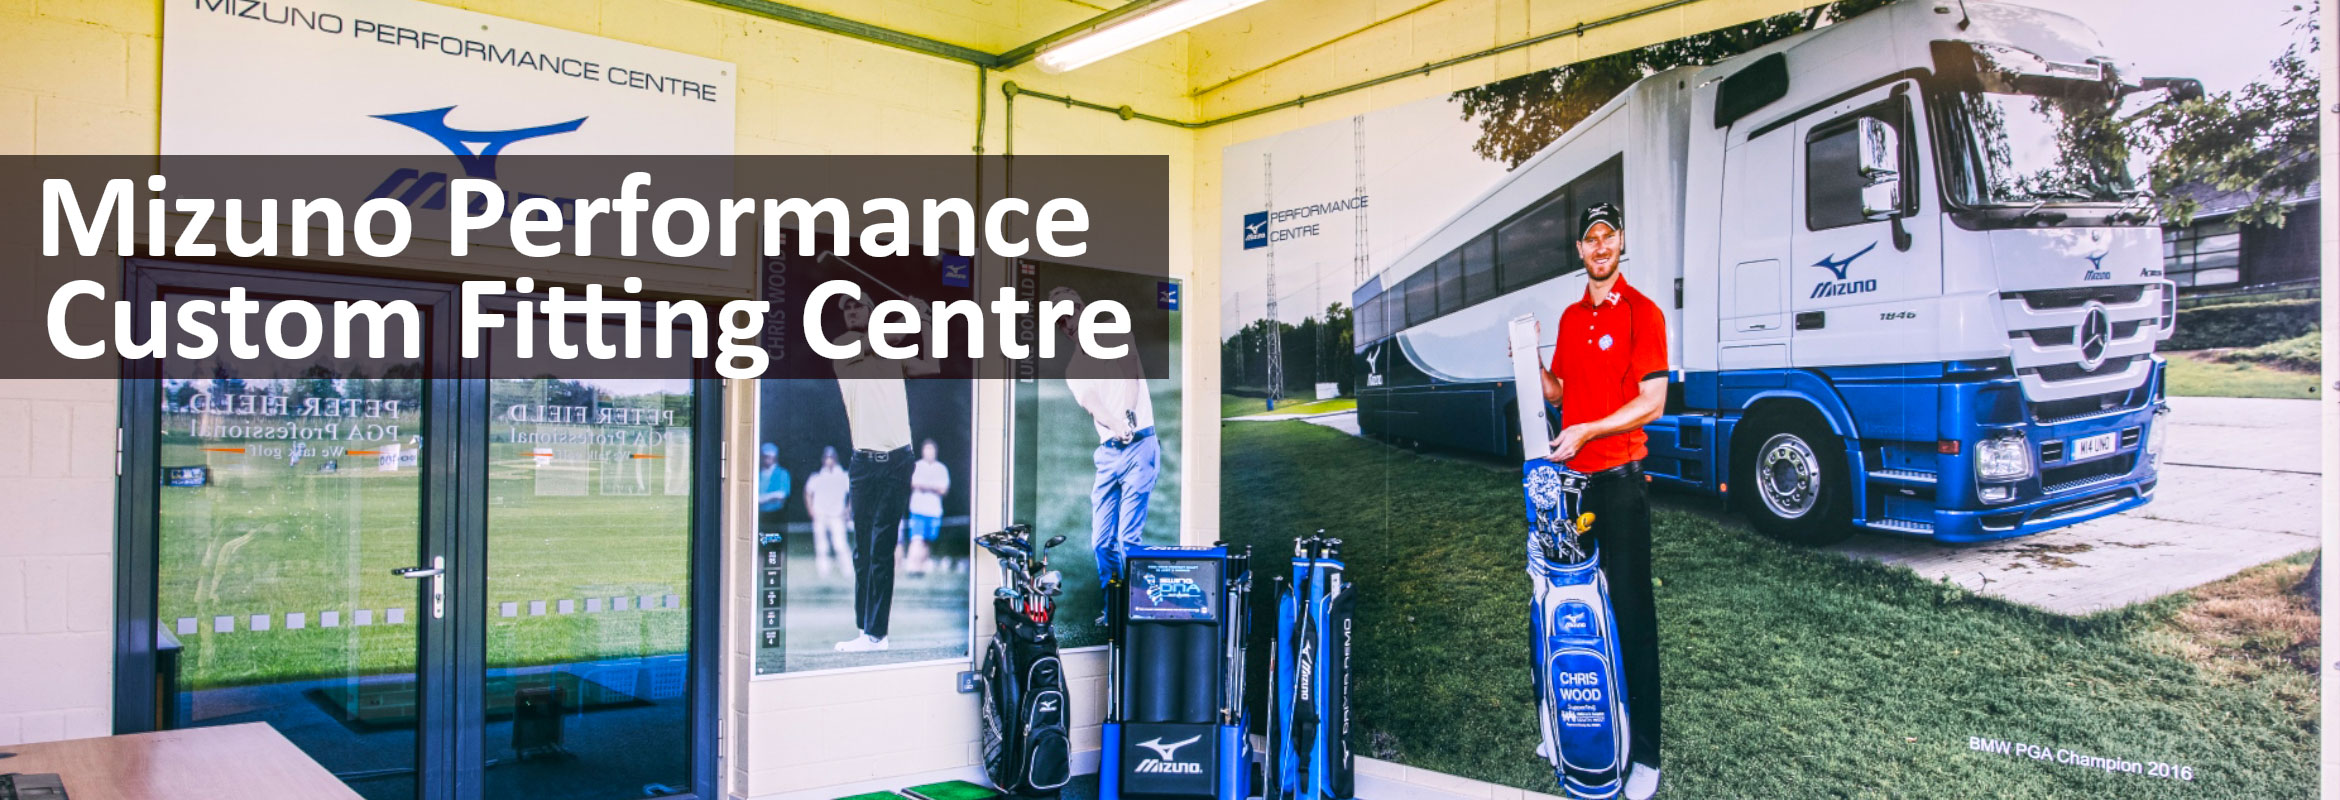 mizuno-club-fitting-centre